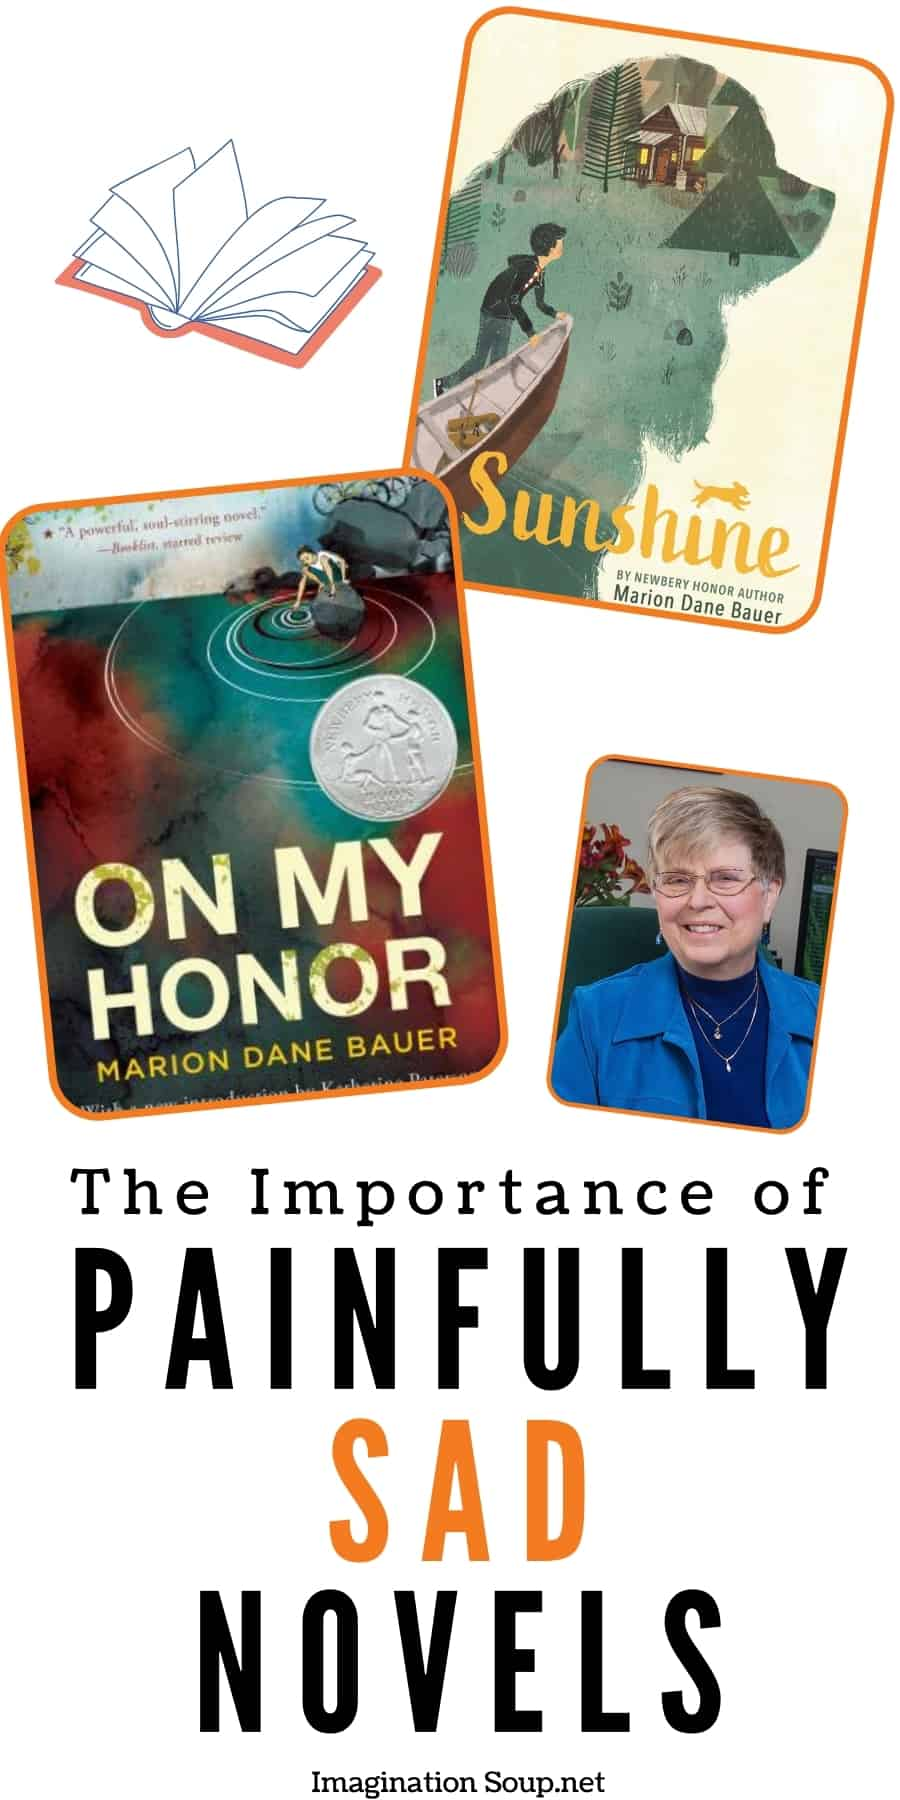 The Importance of Painfully Sad Novels by Marion Dane Bauer